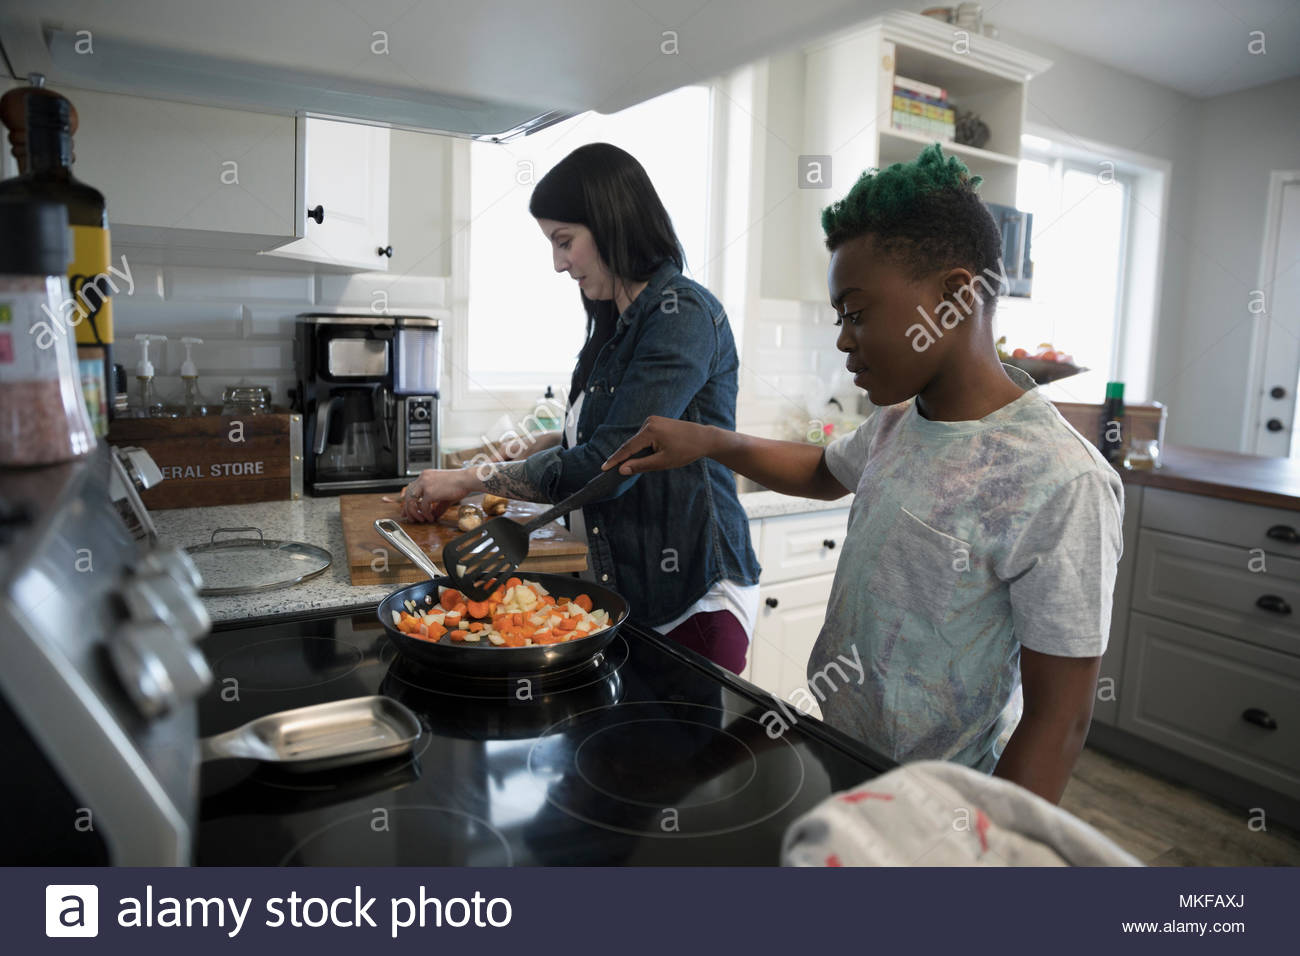 Mother and son preparing and cooking vegetables at kitchen stove - Stock Image